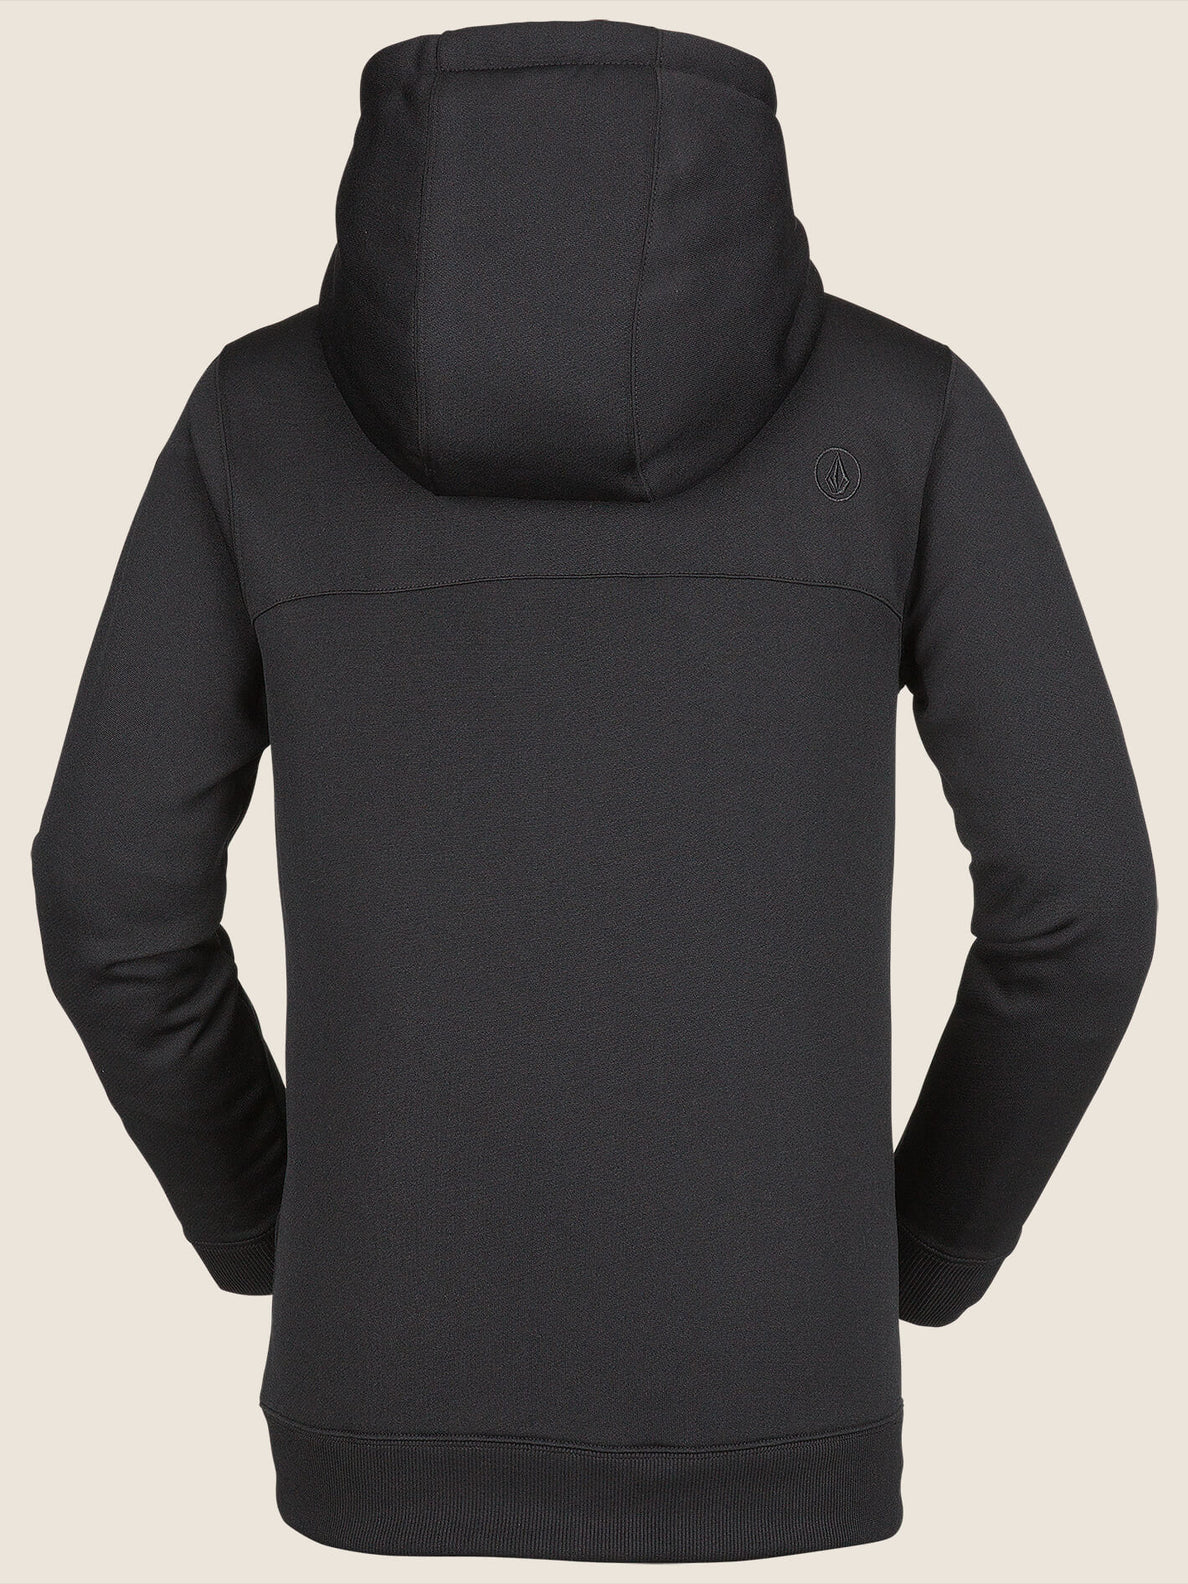 Krestova Fleece In Black, Back View